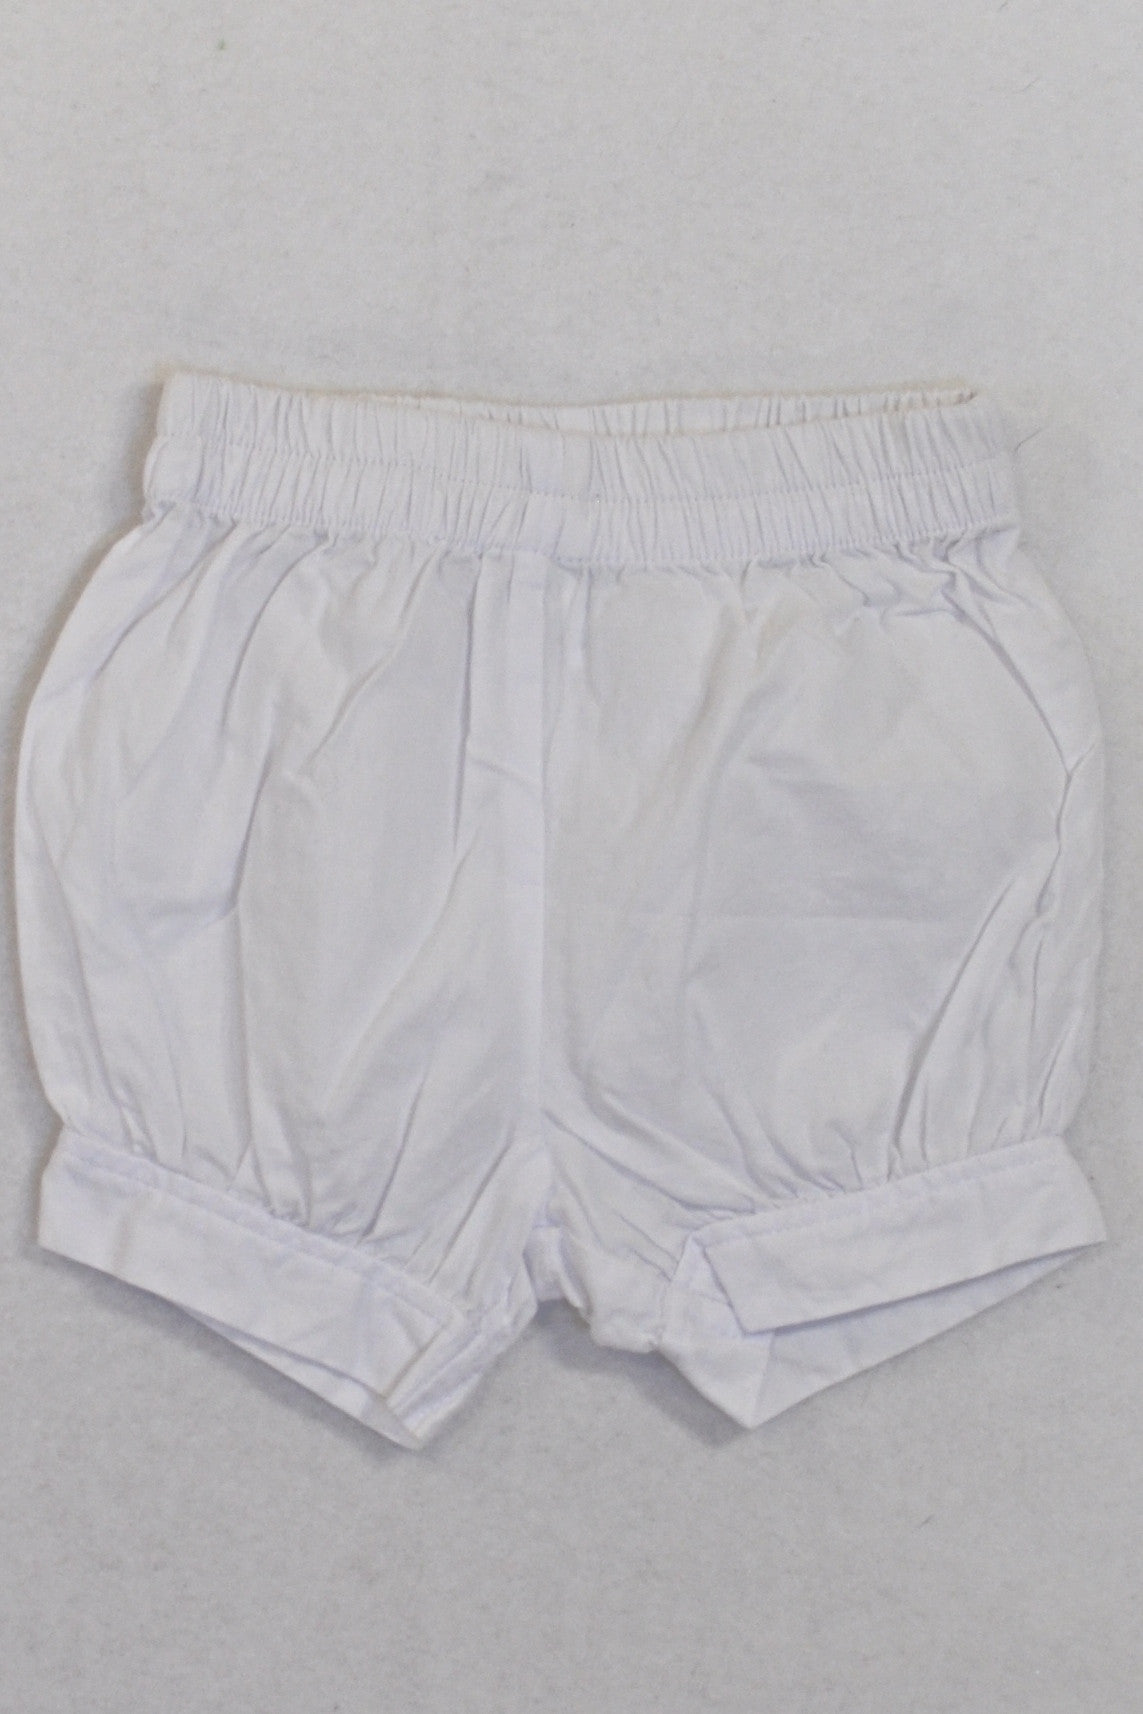 White Bubble Shorts Girls 0-3 months